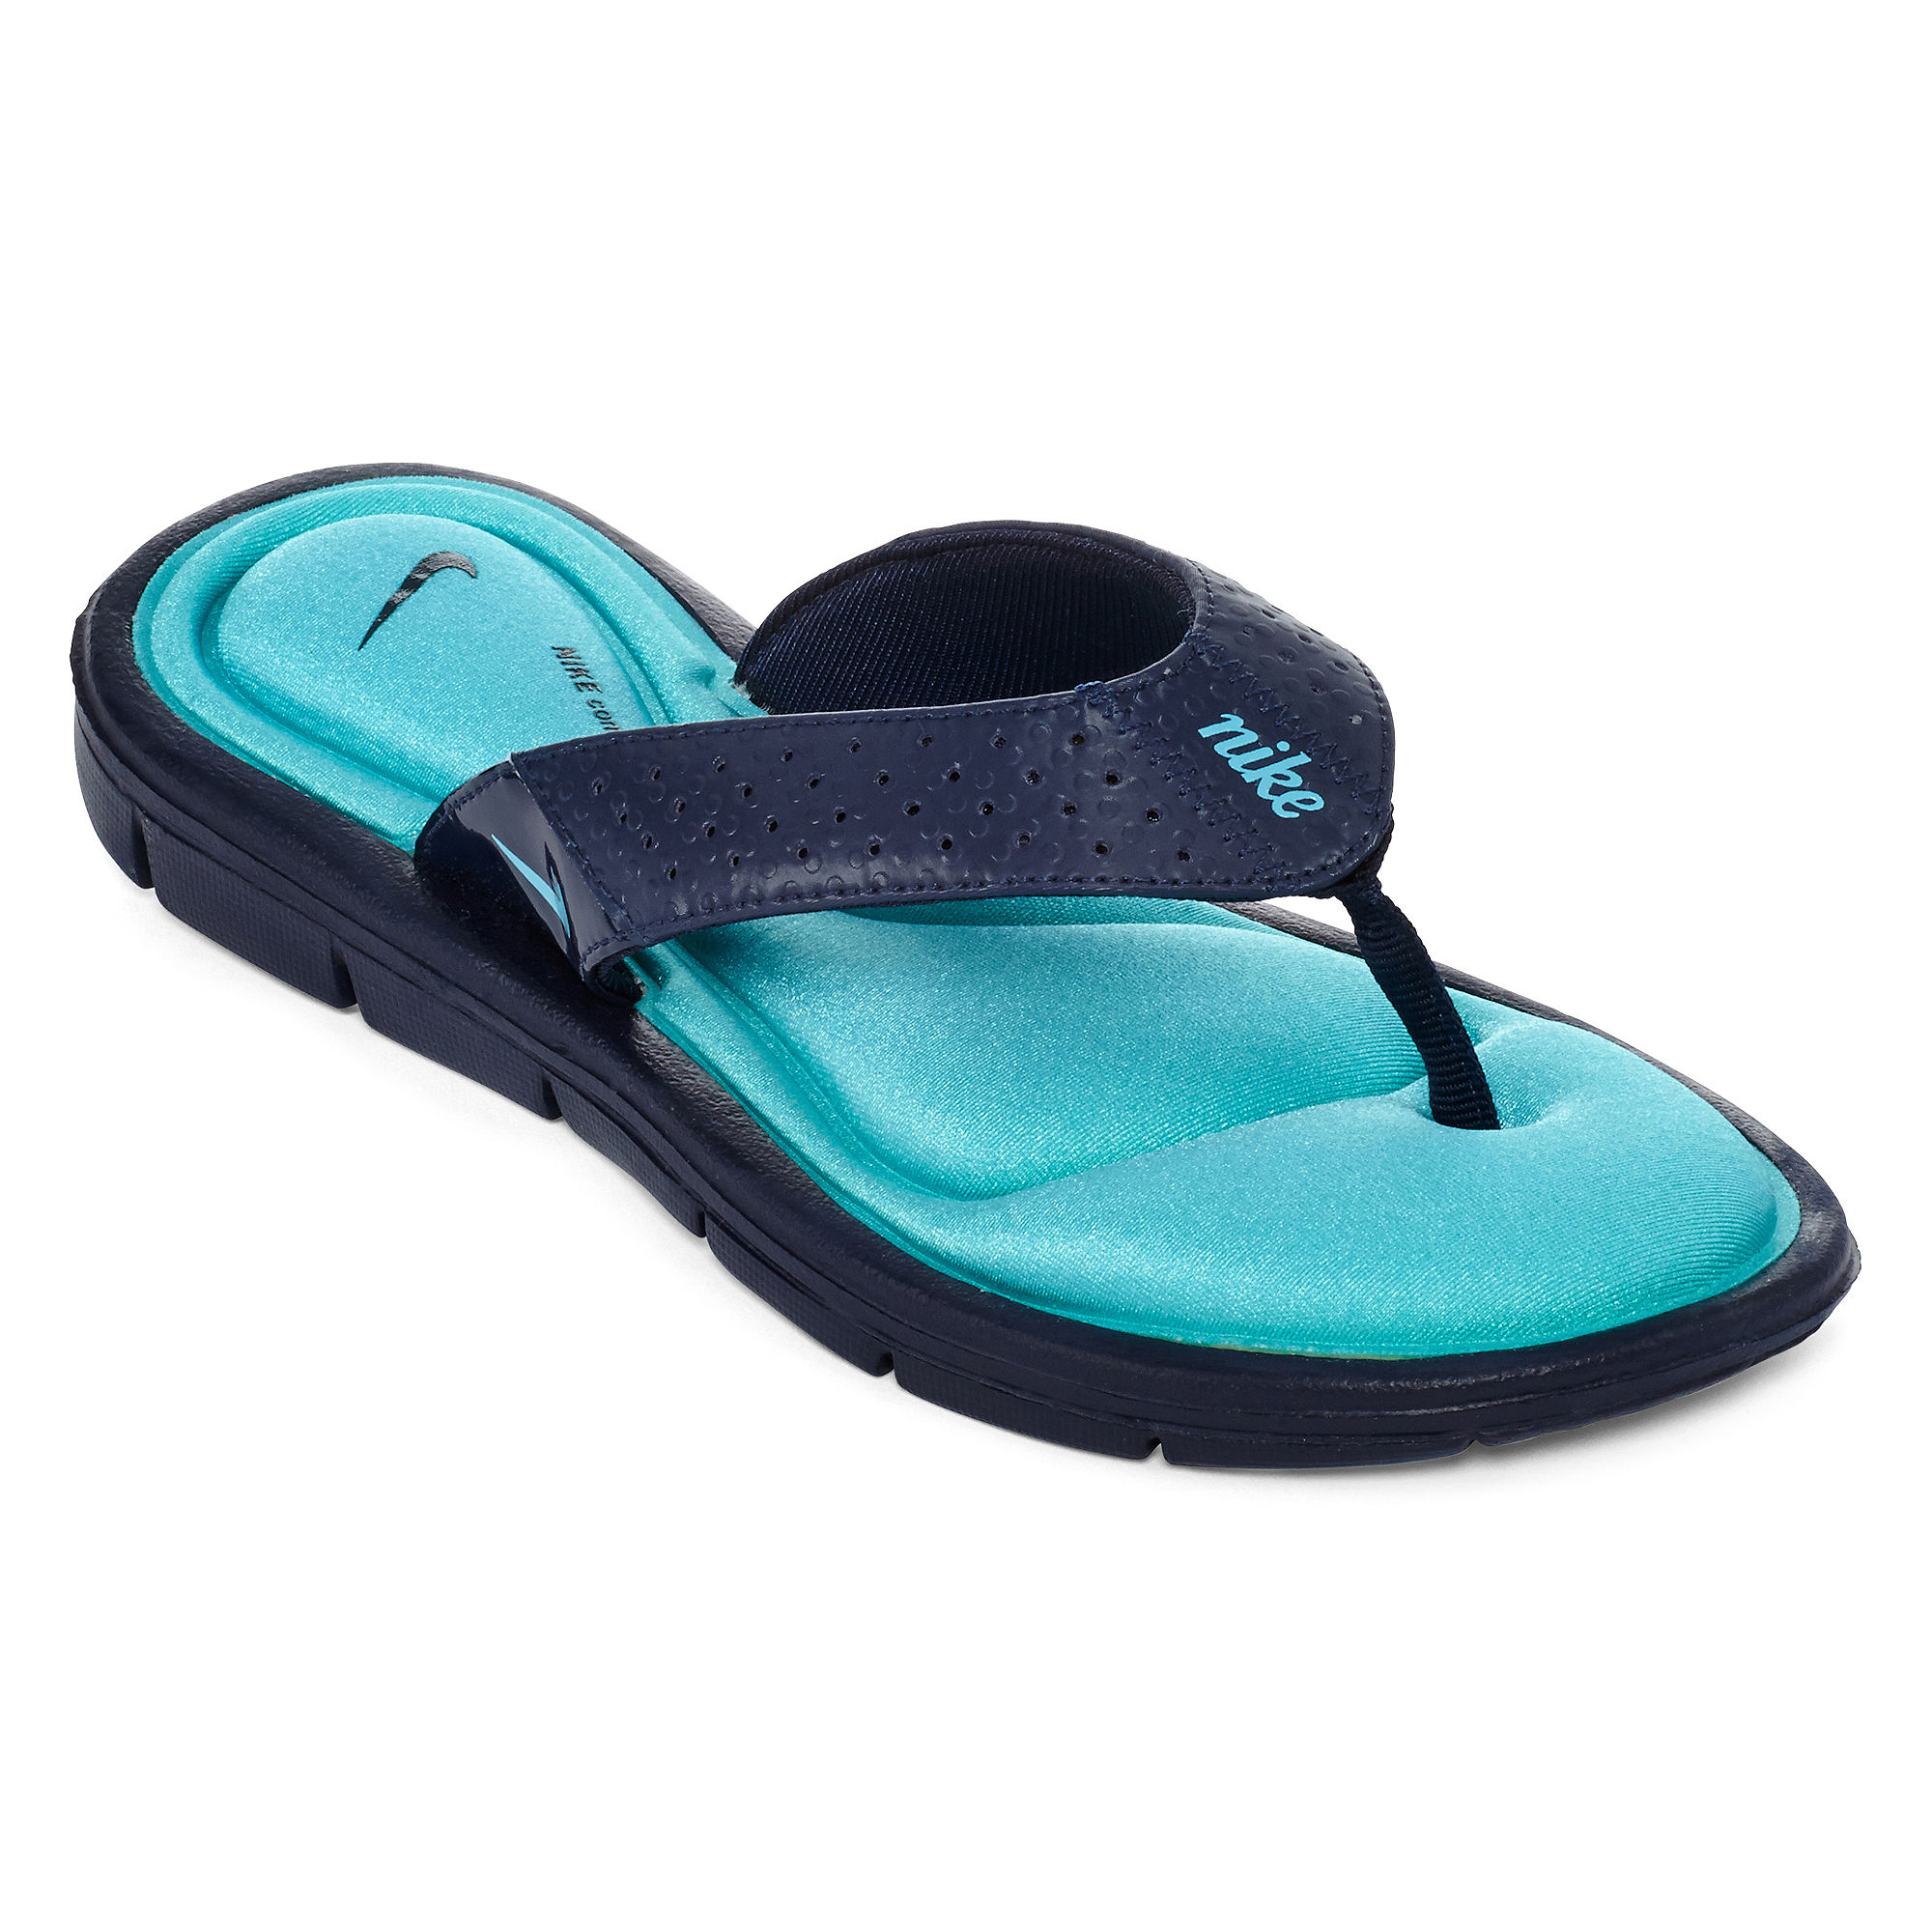 alpine sandals beach swiss comfort flops mens itm sole eva men s lightweight thongs comforter thong nike flip bge